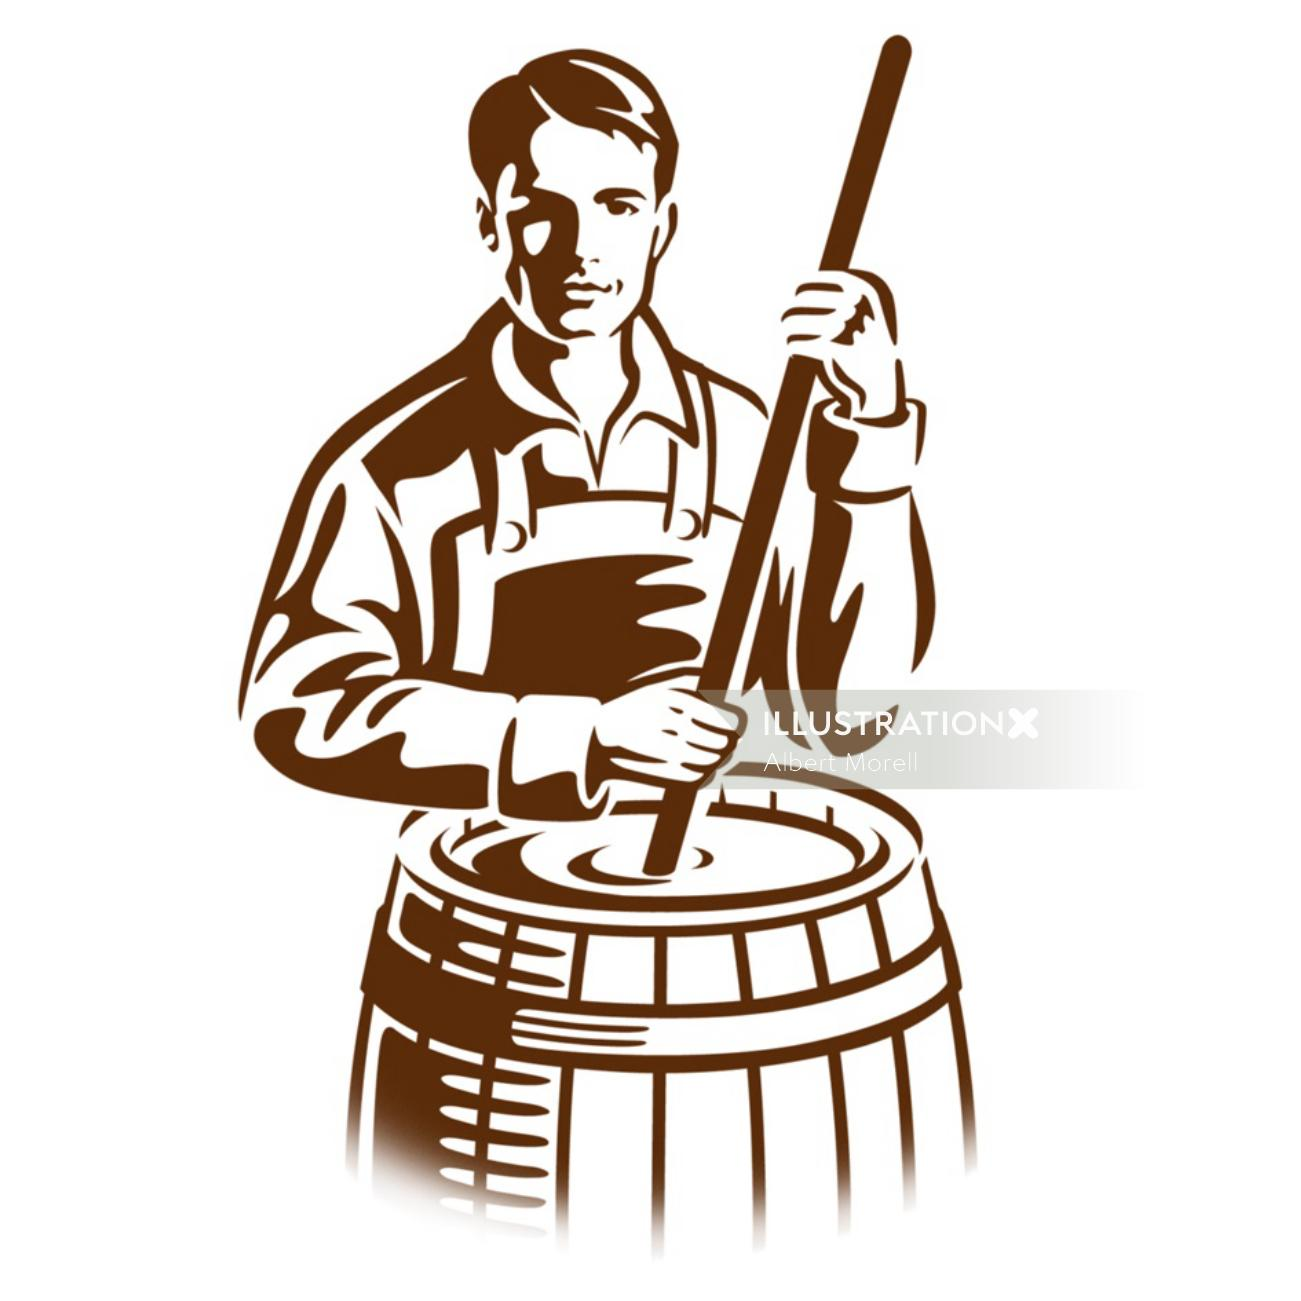 Illustration of traditional brewer